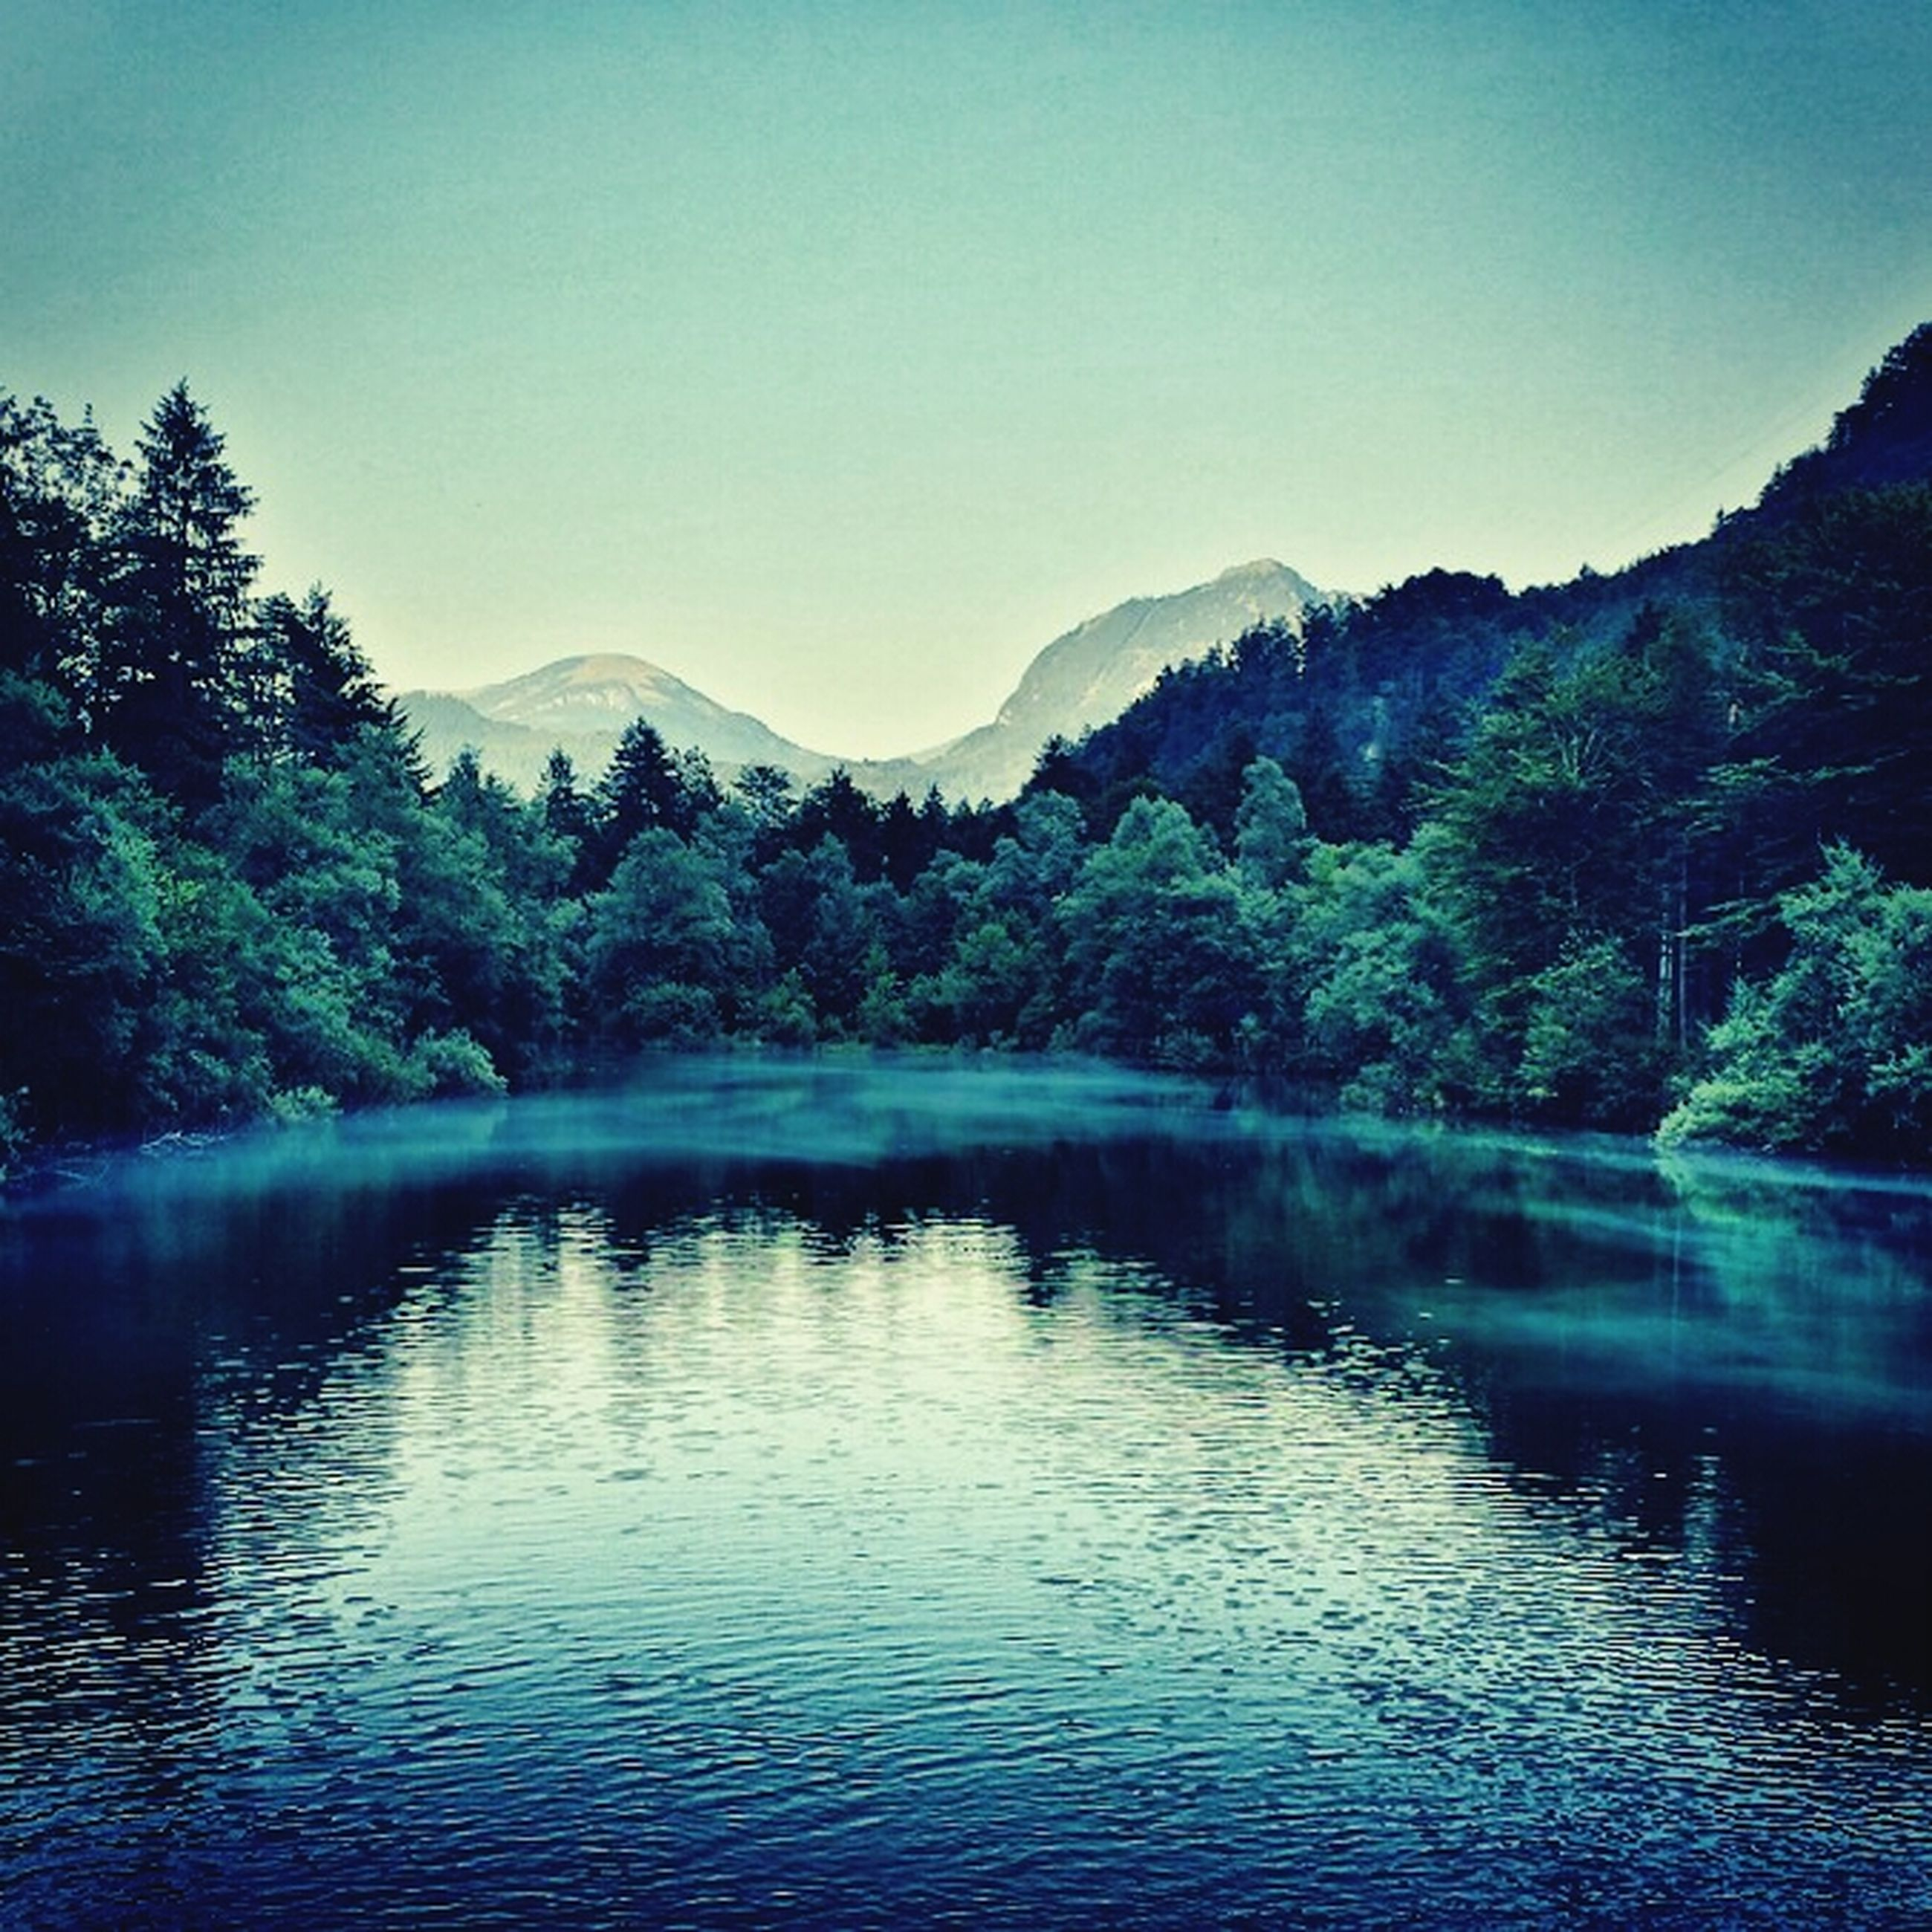 mountain, water, tranquil scene, lake, scenics, tree, tranquility, waterfront, mountain range, beauty in nature, clear sky, nature, reflection, idyllic, river, sky, forest, non-urban scene, outdoors, calm